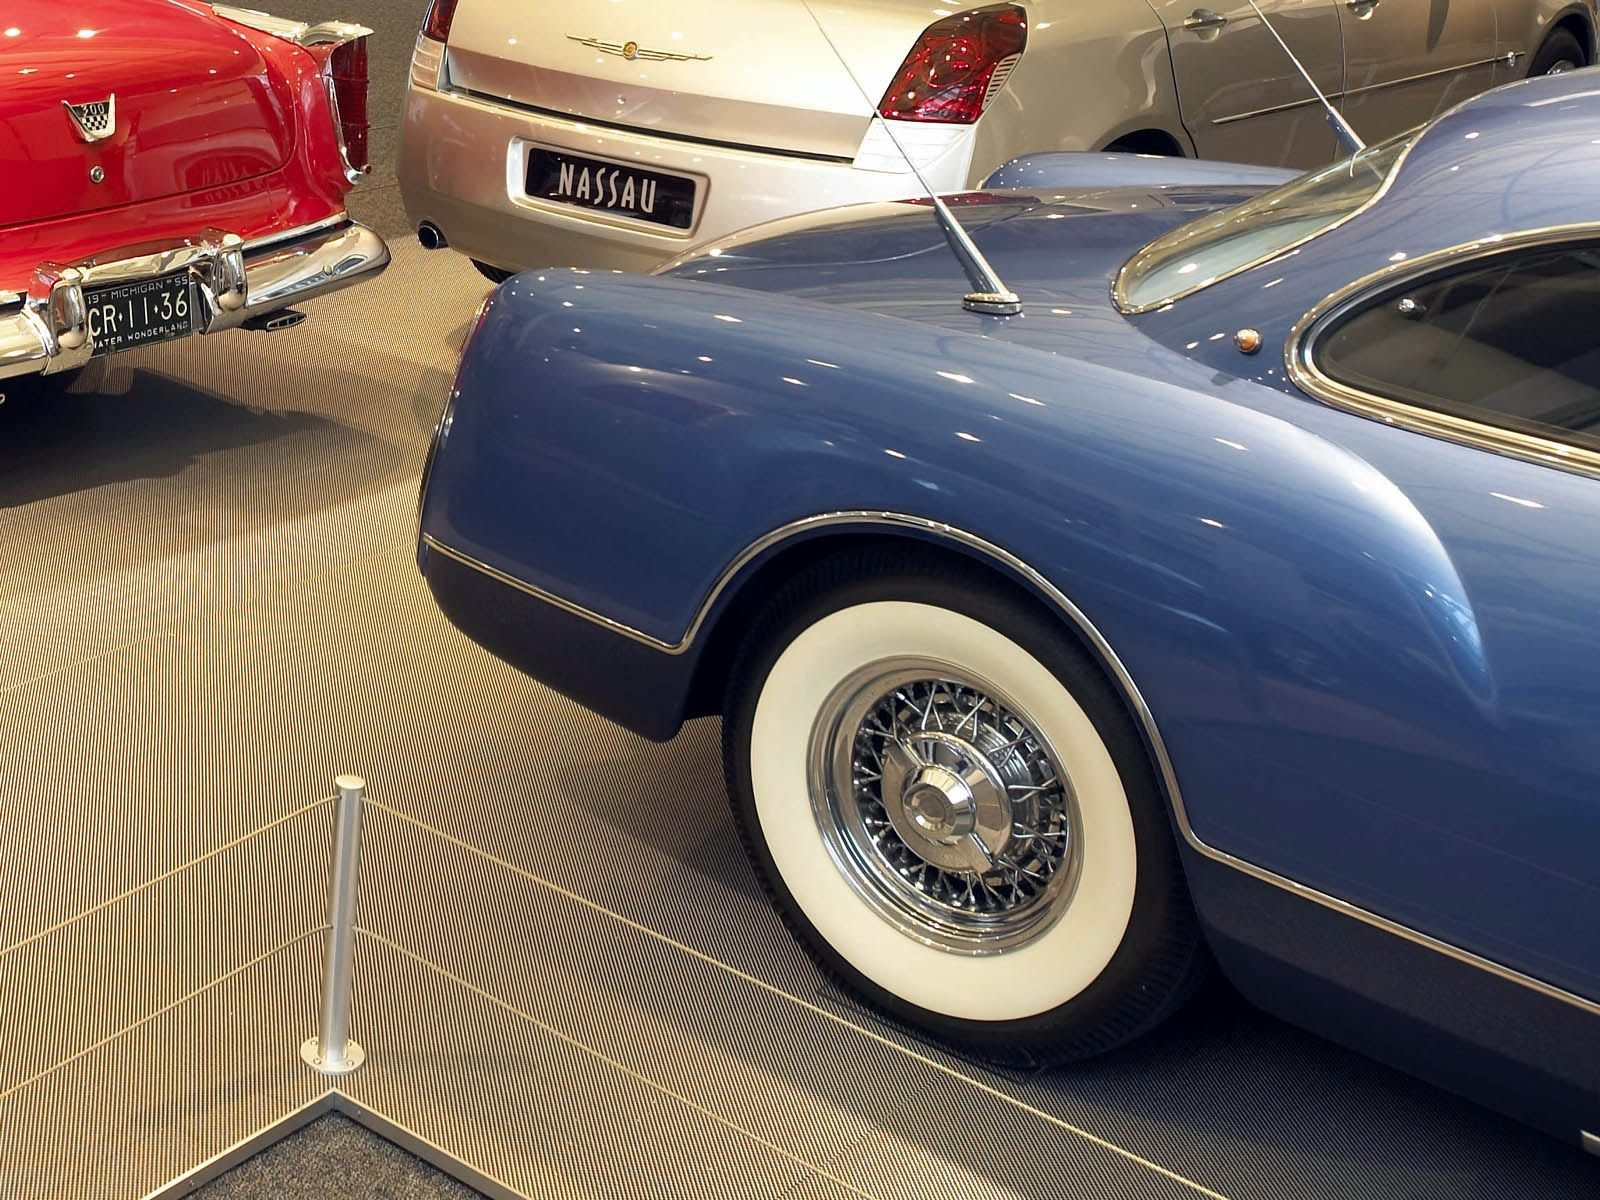 1956 chrysler boano auto shows car and driver - 1956 Chrysler 300b Boano Coupe Built For Fiat Chairman Gianni Agnelli Boano S Ghia And Behond Pinterest Fiat Chrysler 300 And Cars